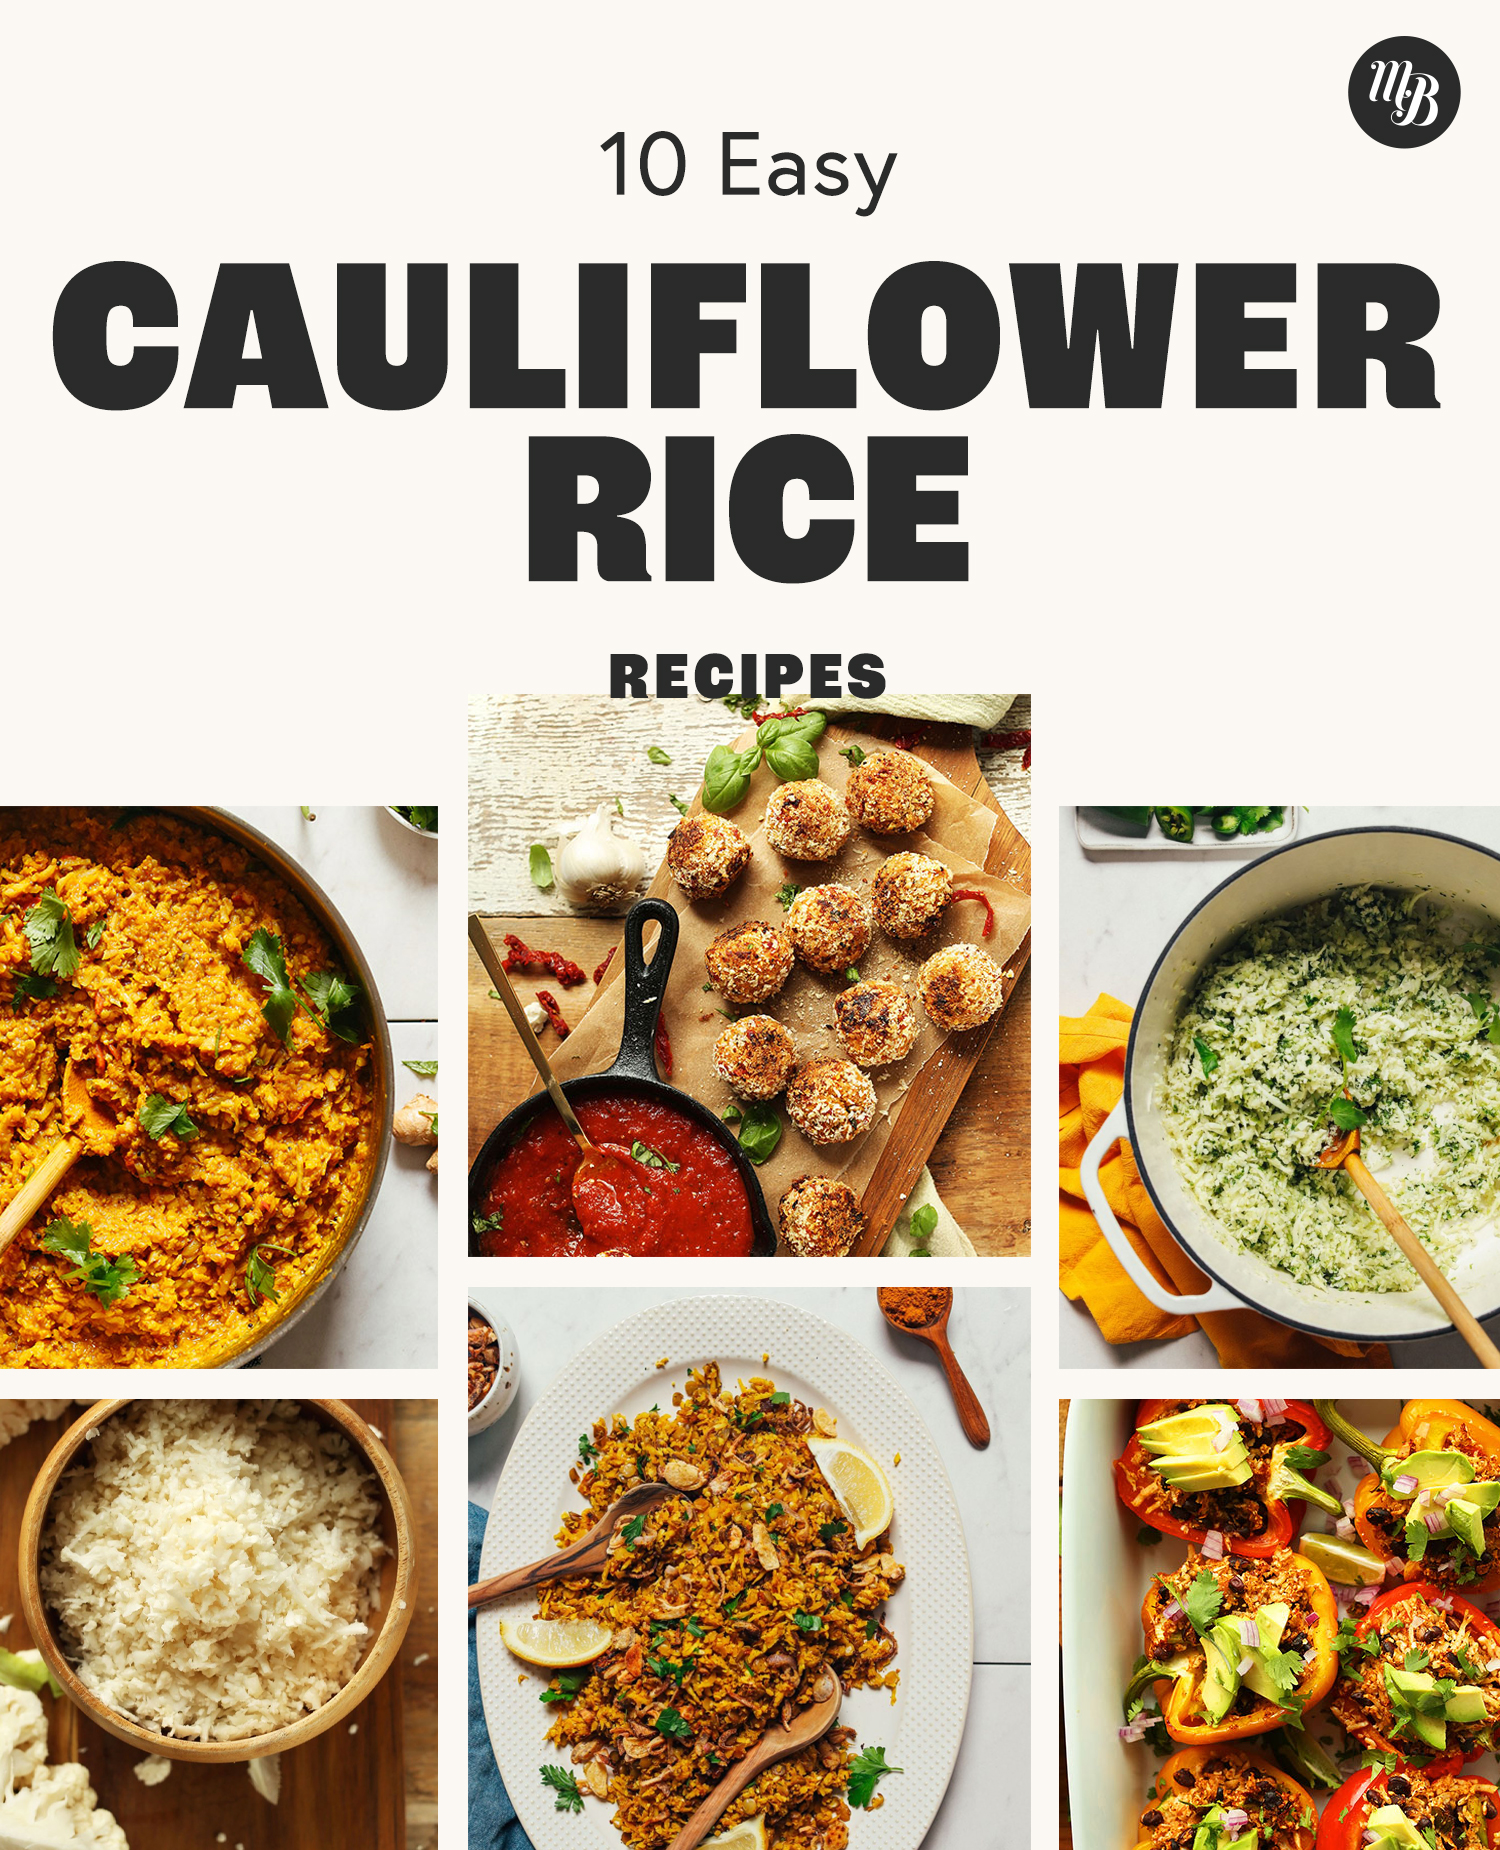 Assortment of easy recipes made with cauliflower rice